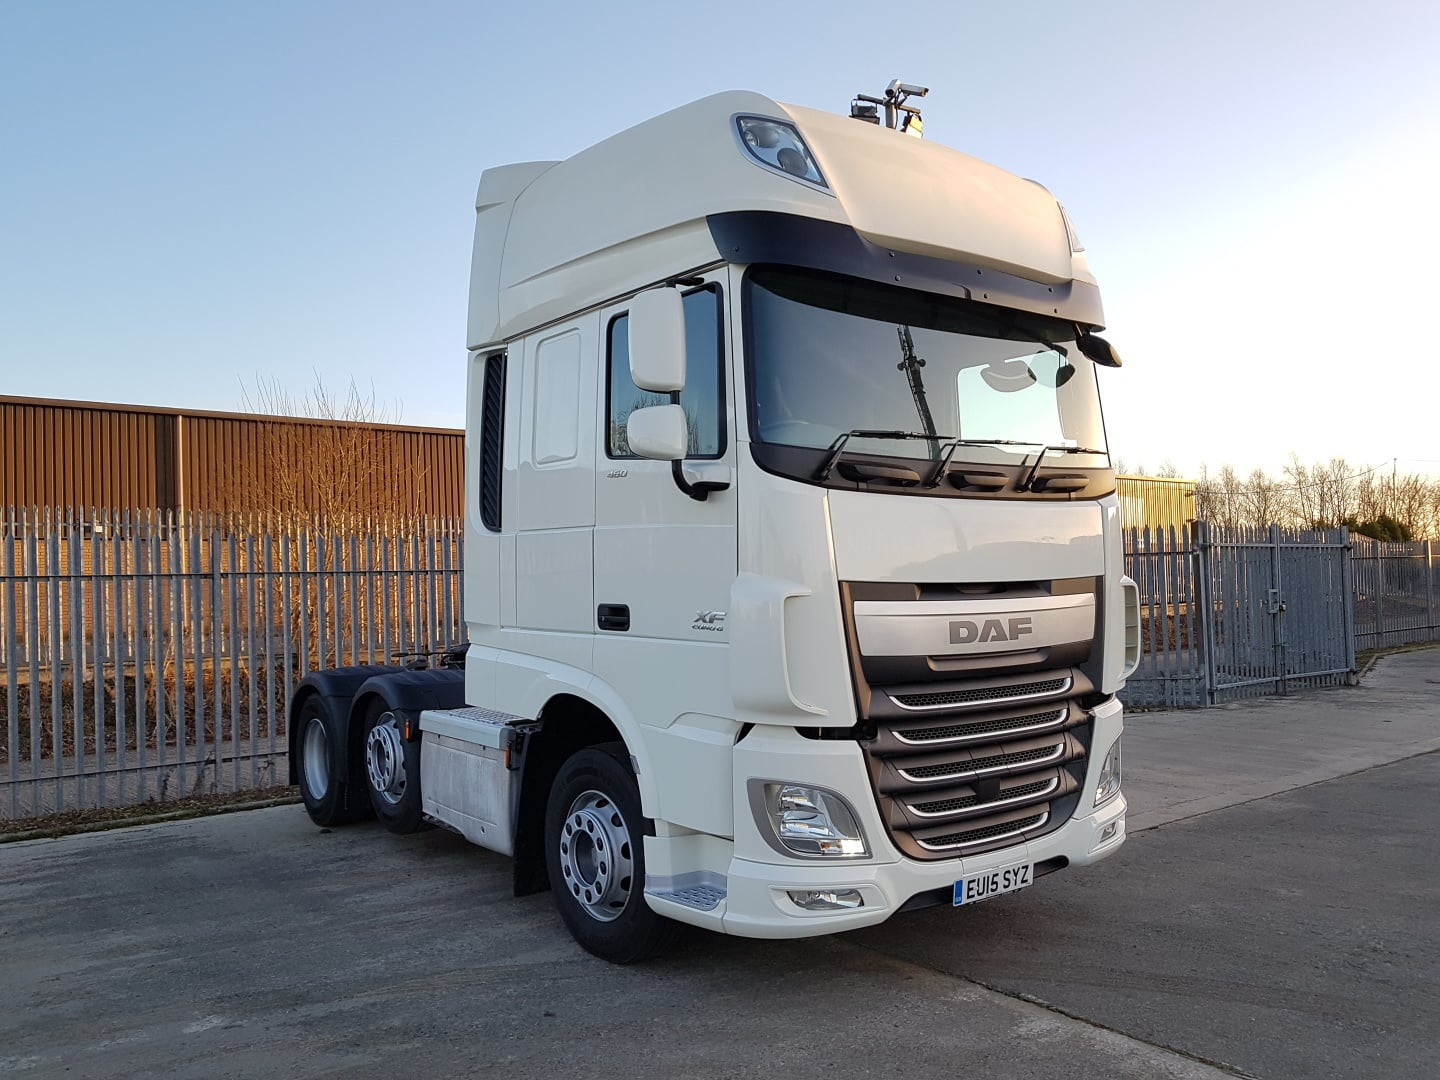 2015 XF Superspace Cab DAF in immaculate condition! Euro 6 plain white tractor unit available for sale, currently in Glasgow. 416,000kms, twin sleeper cab, automatic gearbox, mid-lift, fridge, upgraded stereo. MOT November 2019.